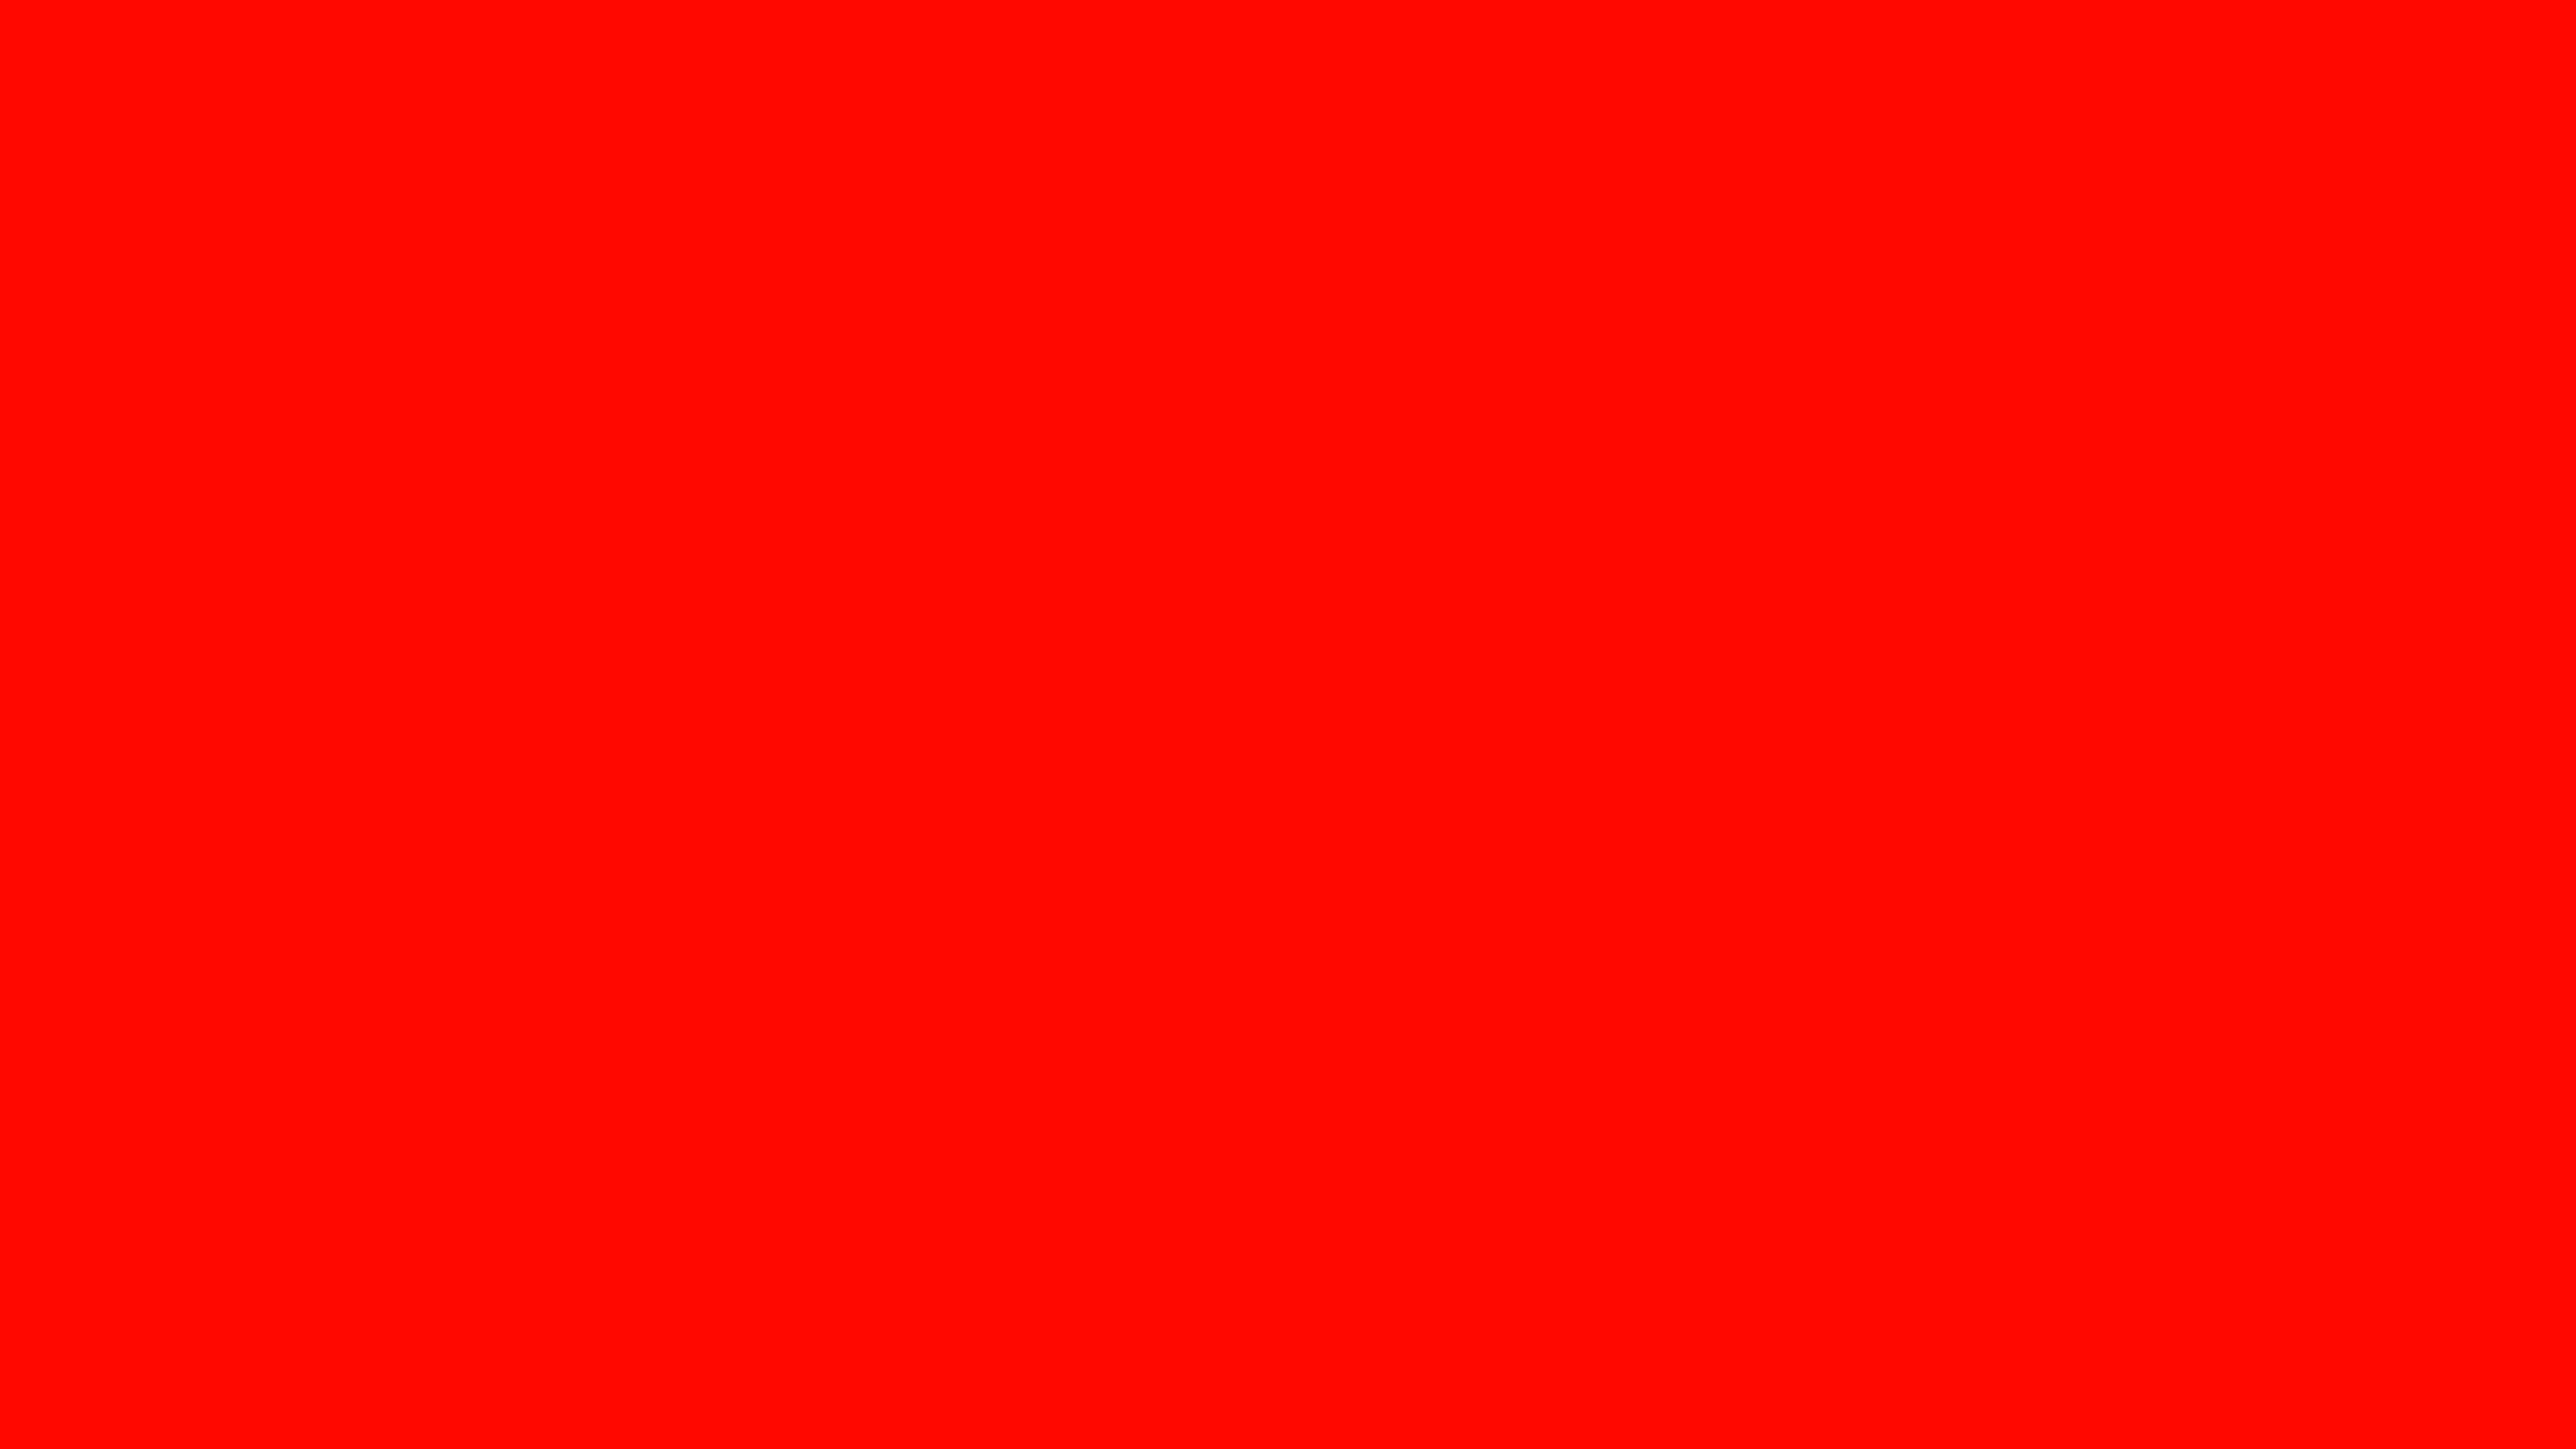 3840x2160 Candy Apple Red Solid Color Background